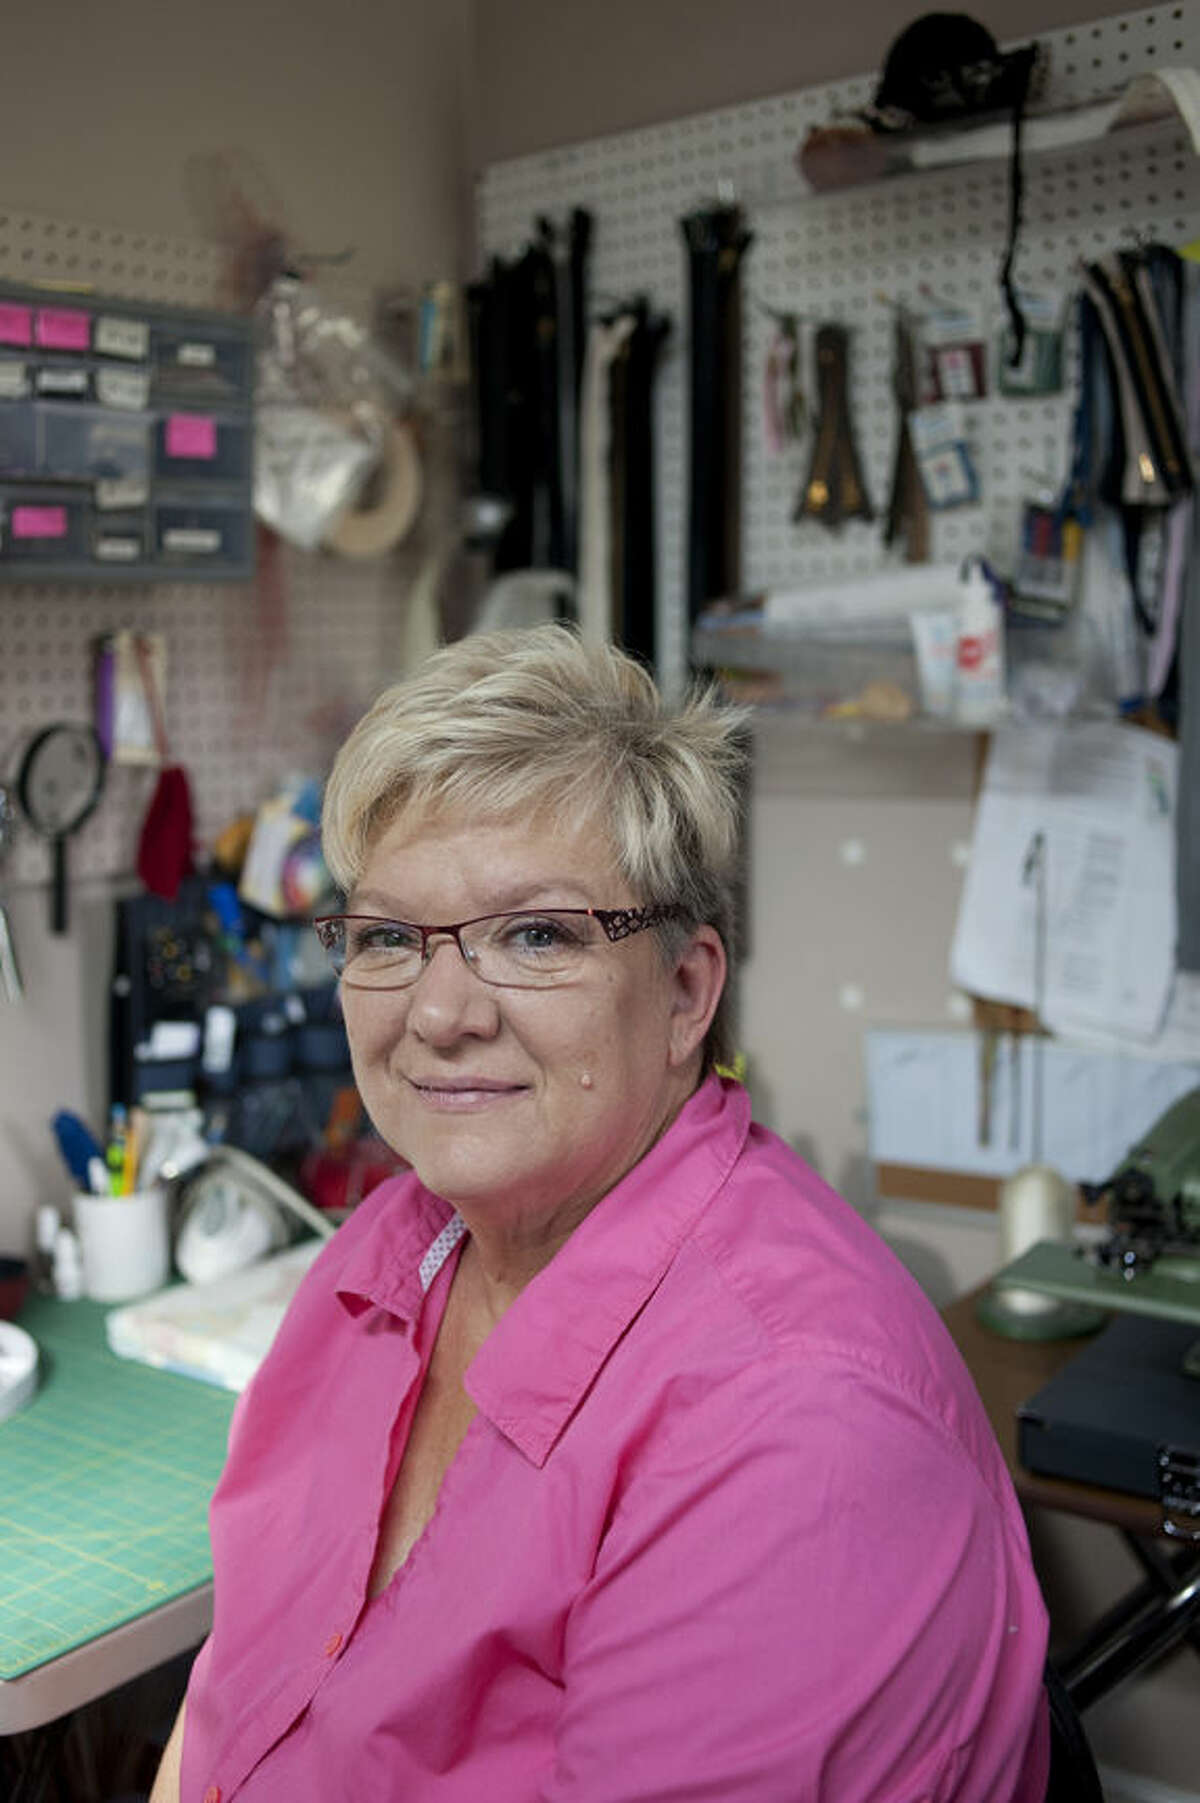 BRITTNEY LOHMILLER   blohmiller@mdn.net Sally Bukoski, owner of Alterations and Custom Sewing, won best alteration shop in the Midland Daily New's Reader's Choice awards.